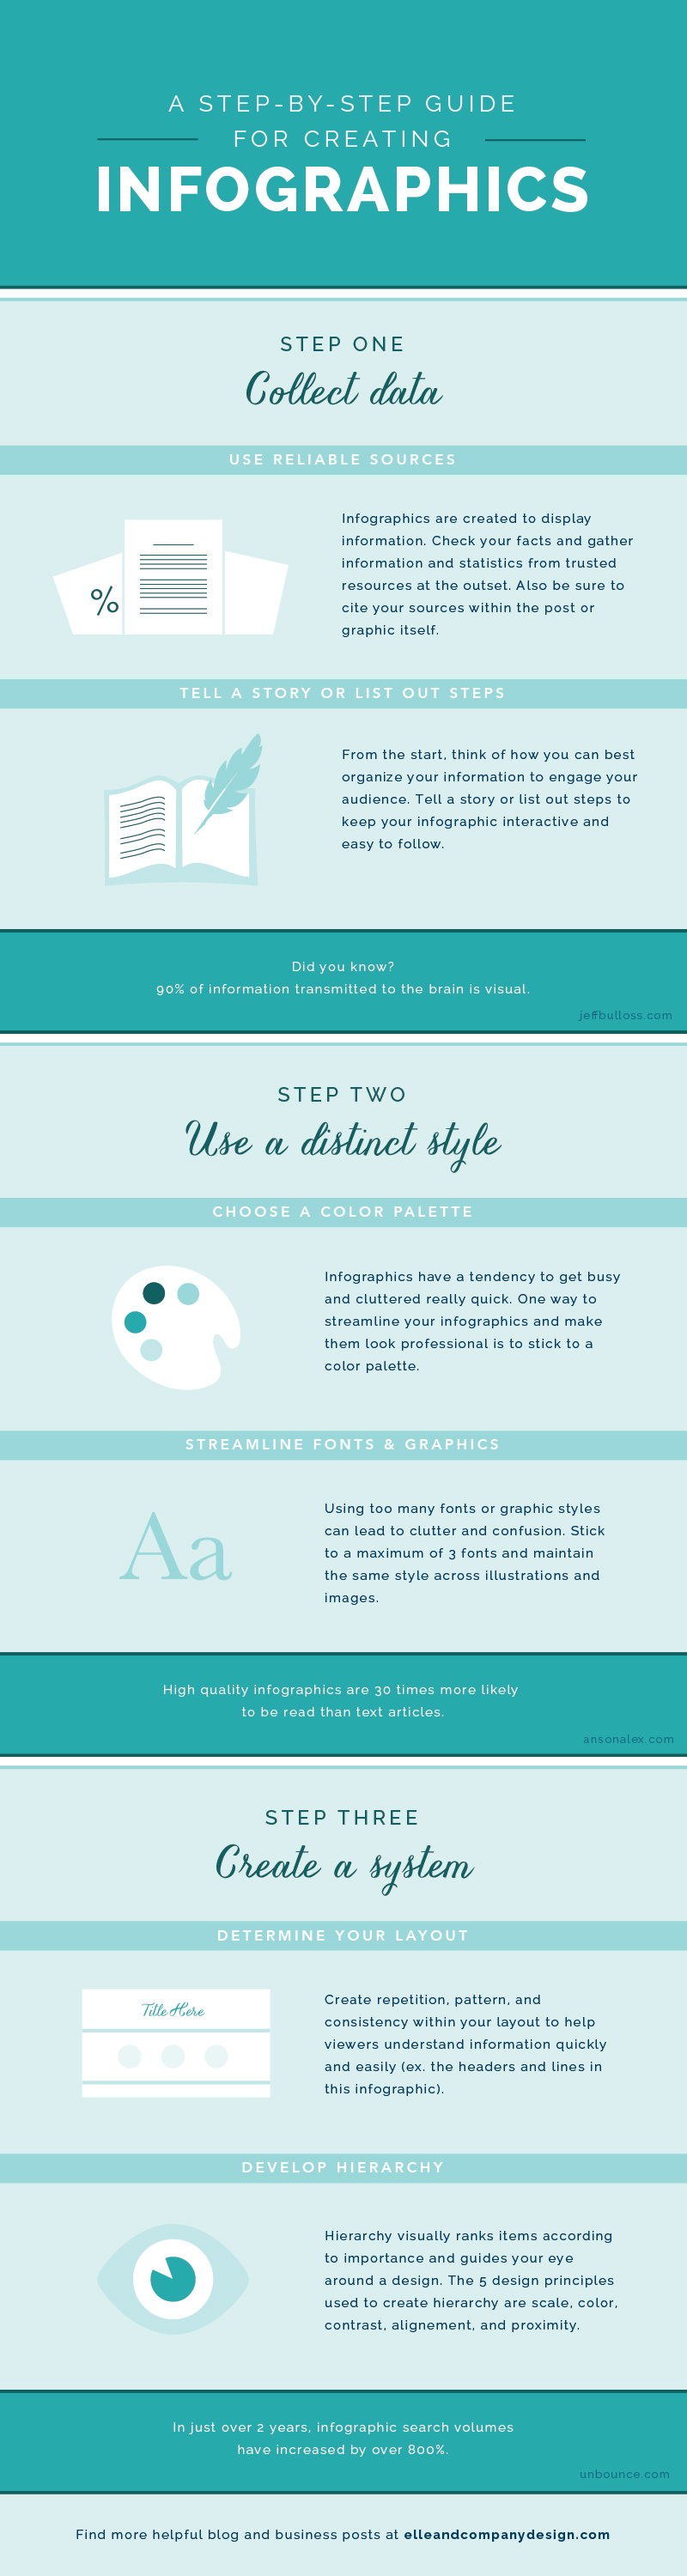 A Step-By-Step Guide for Creating Infographics - Elle & Company